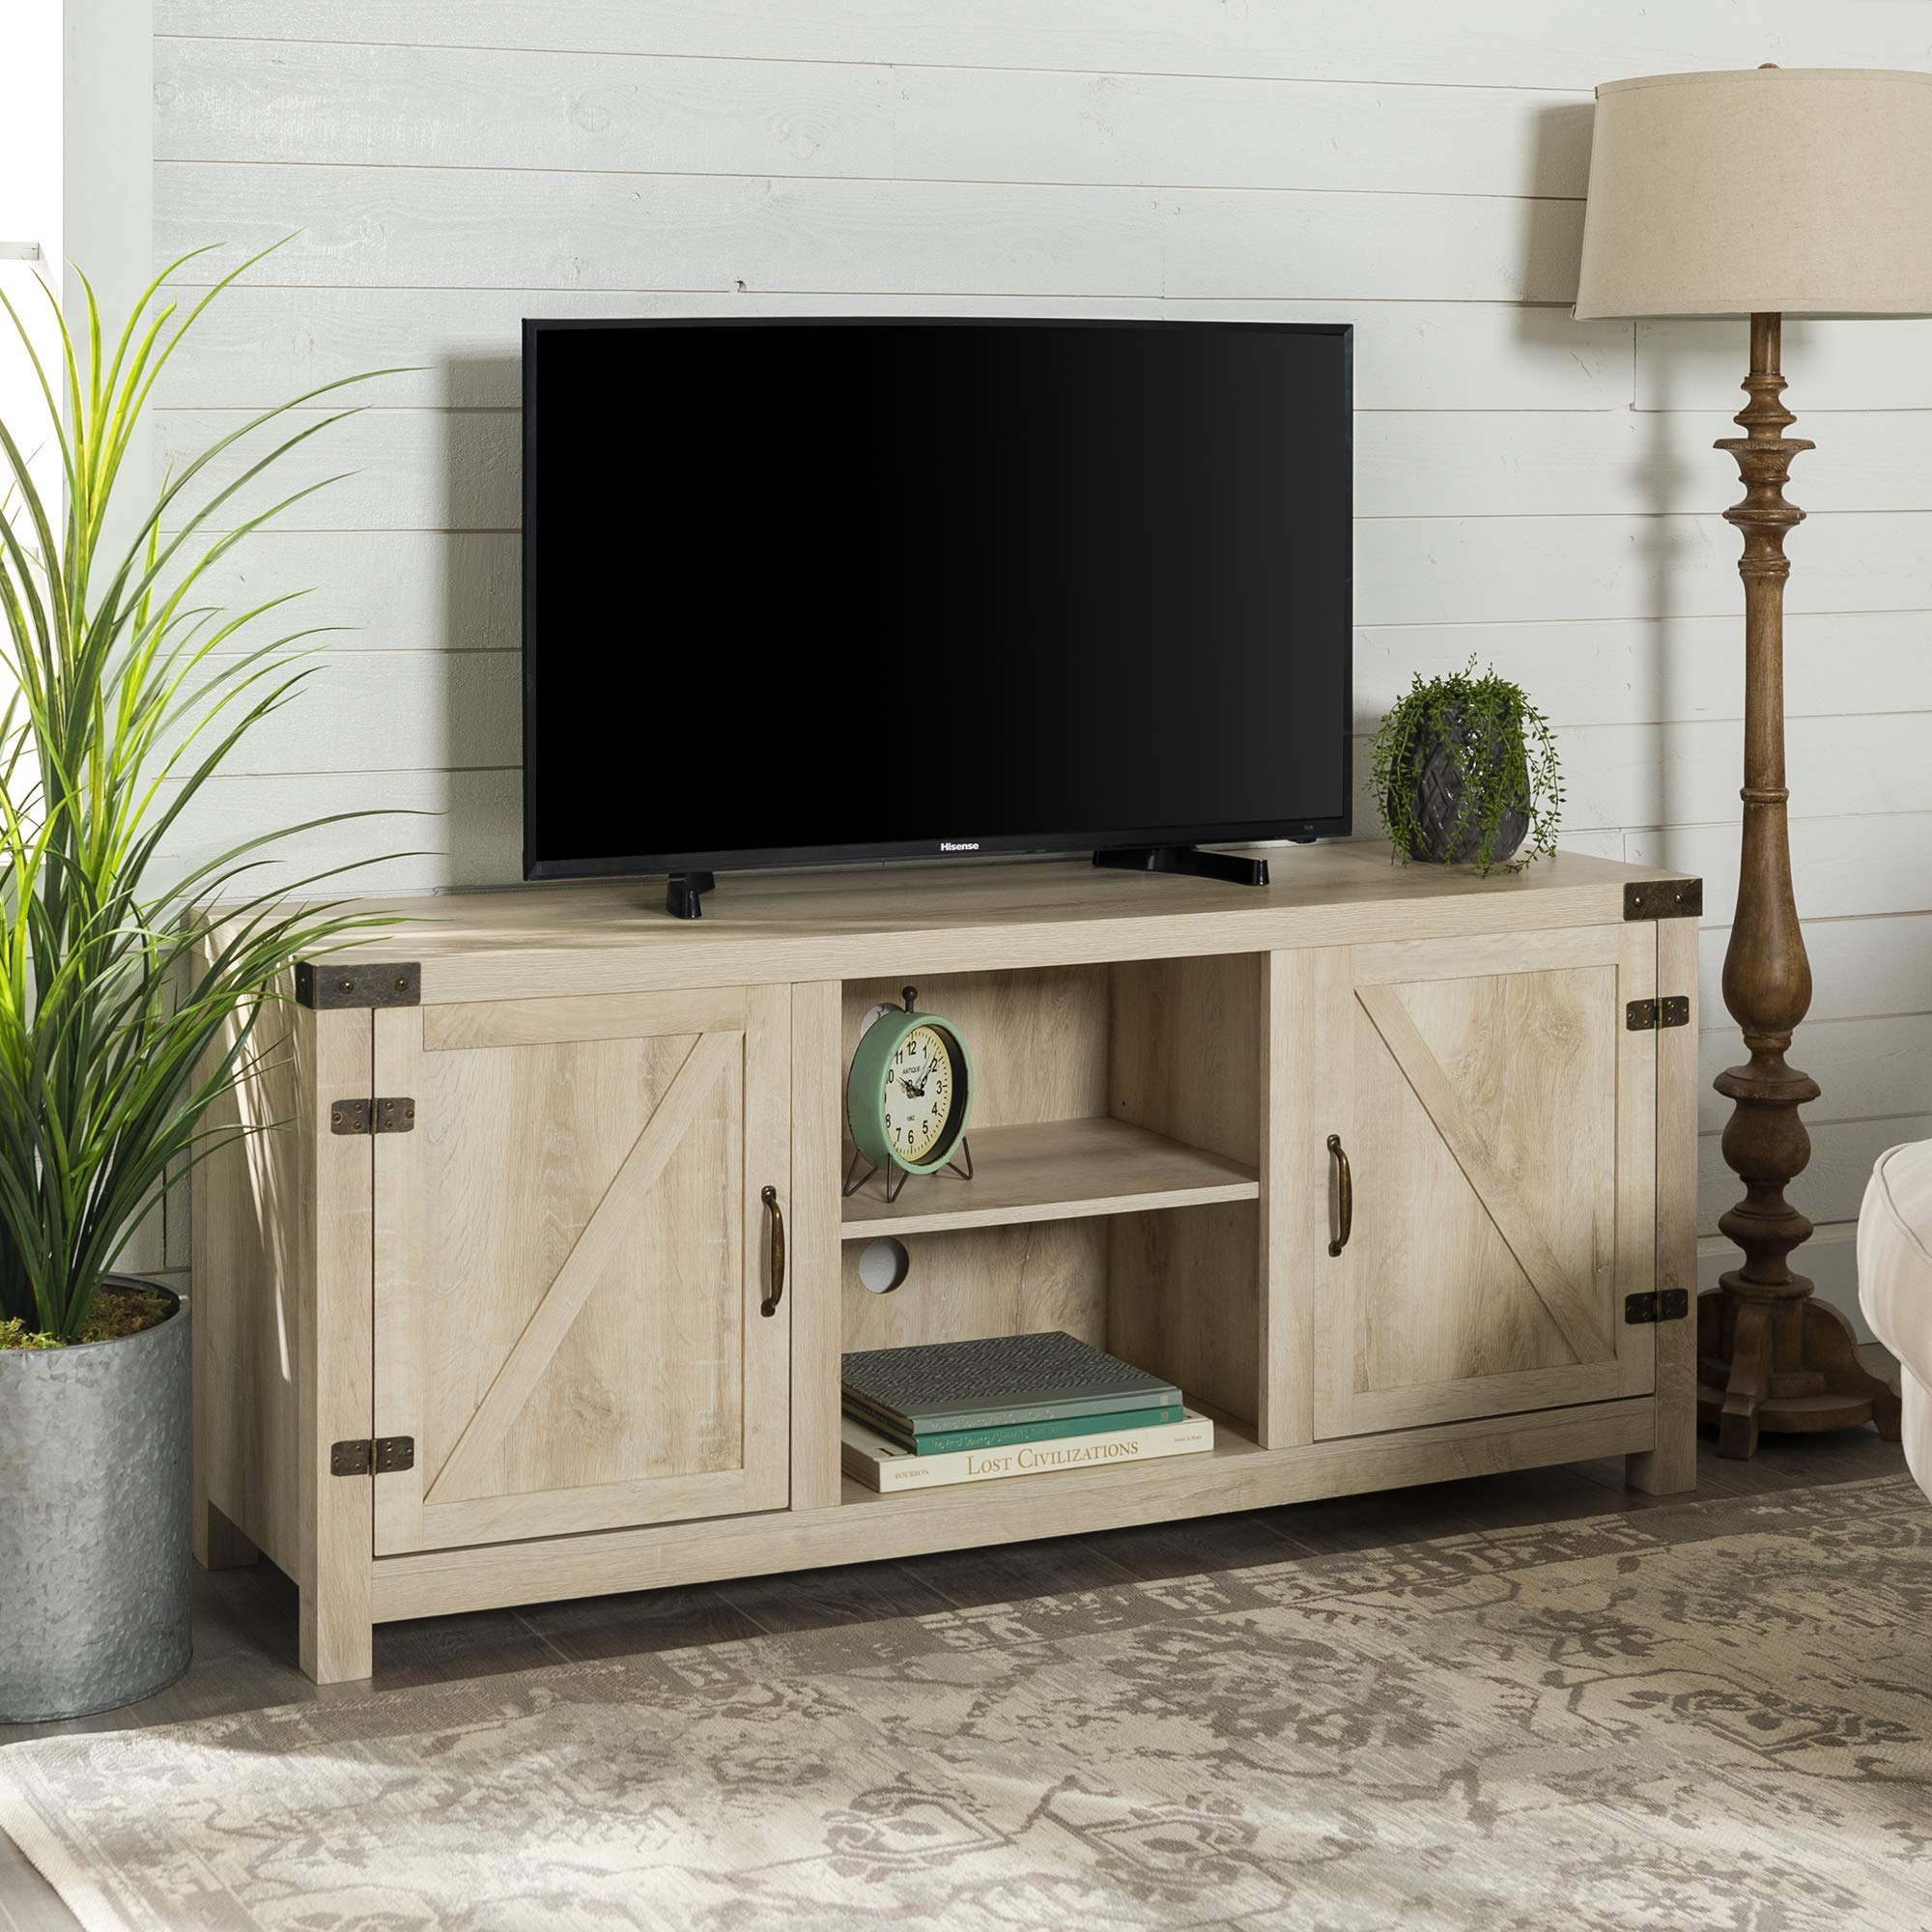 WE Furniture Farmhouse Barn Door Wood Stand for TV's up to 64'' Living Room Storage, 58'', White by WE Furniture